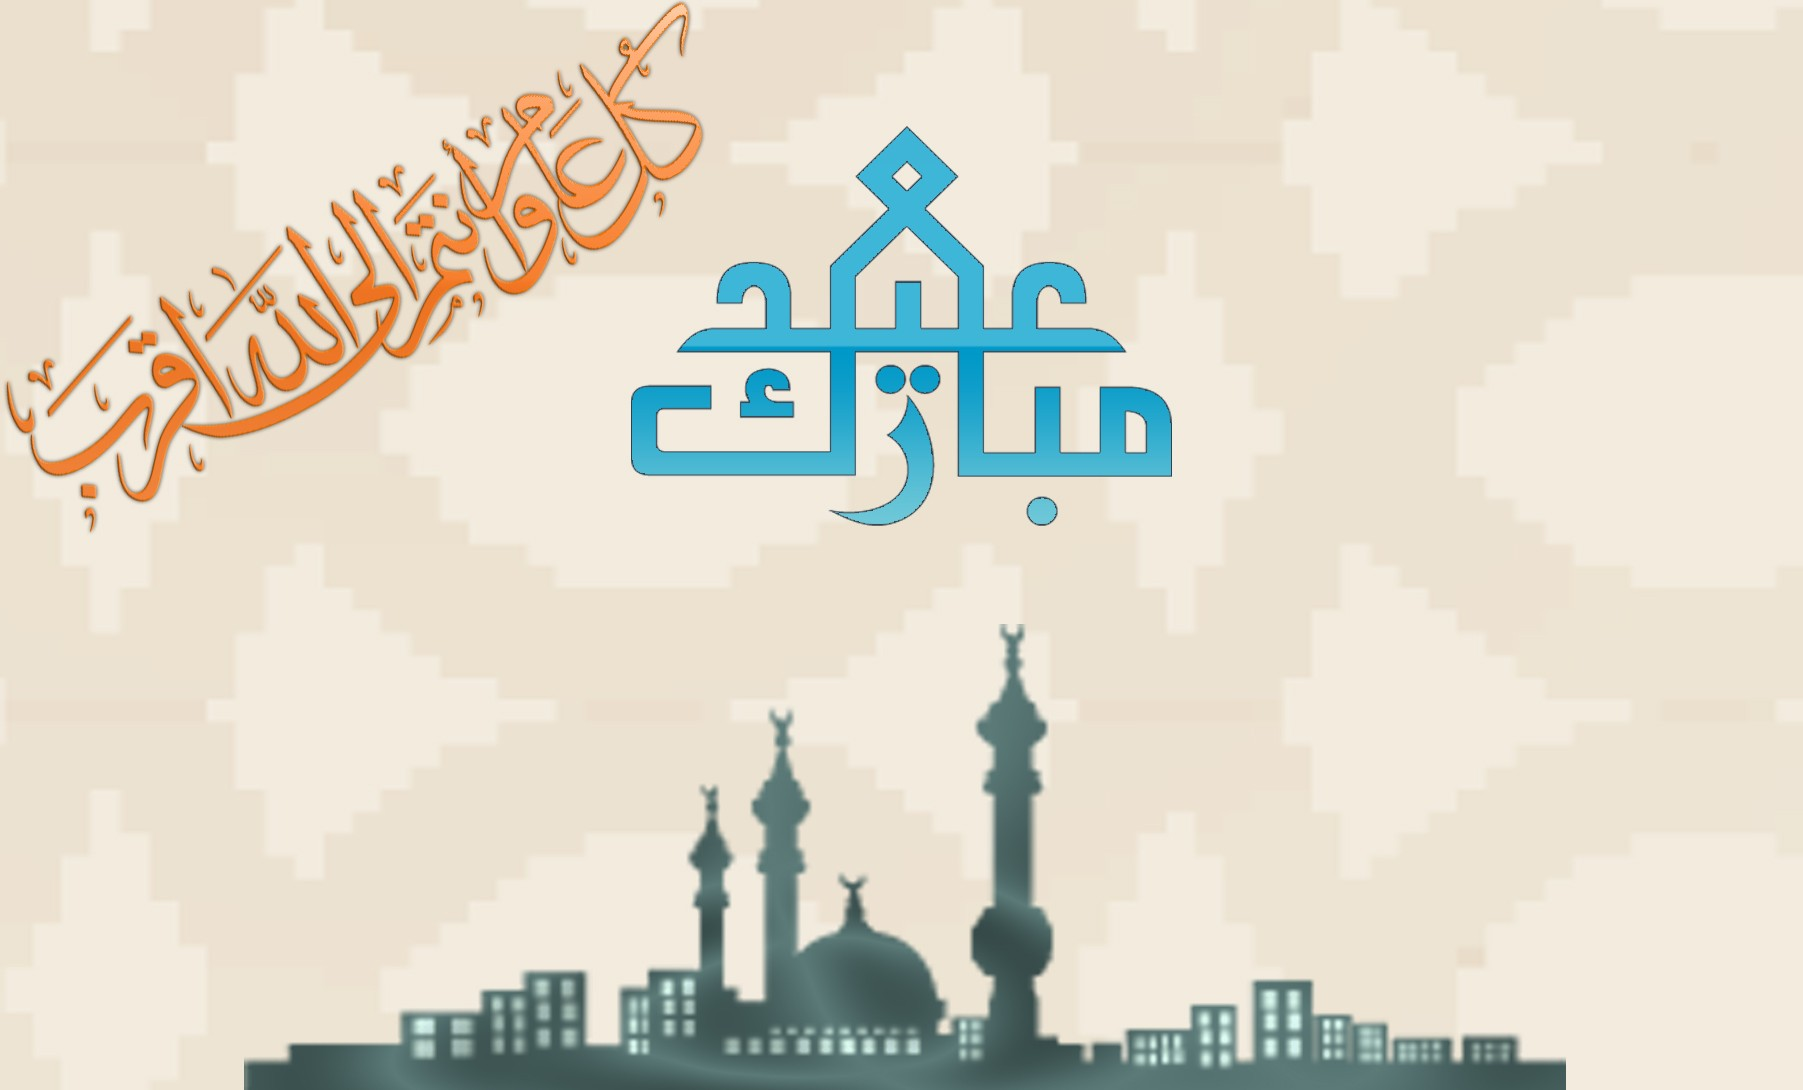 Eid Ul Fitr 2015 Wallpaper Free Download